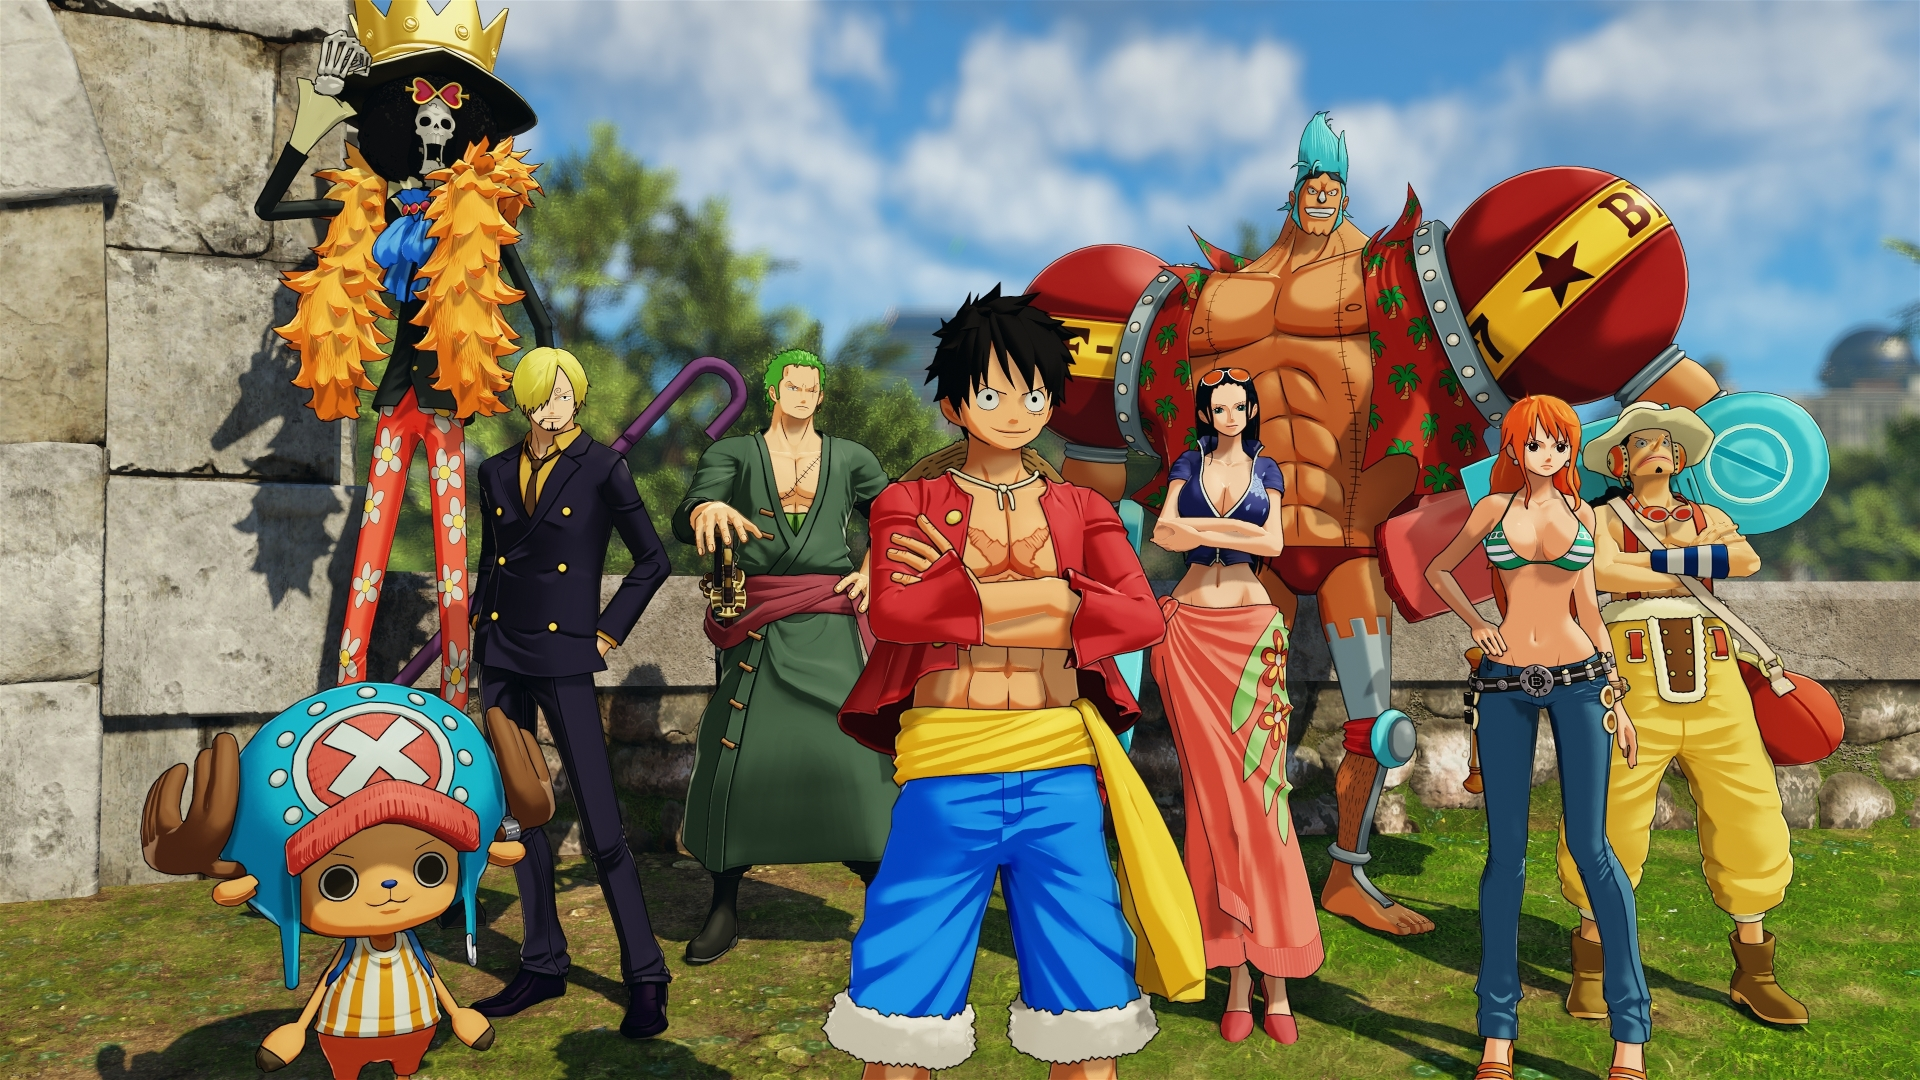 1920x1080 One Piece World Seeker 4k 1080p Laptop Full Hd Wallpaper Hd Games 4k Wallpapers Images Photos And Background